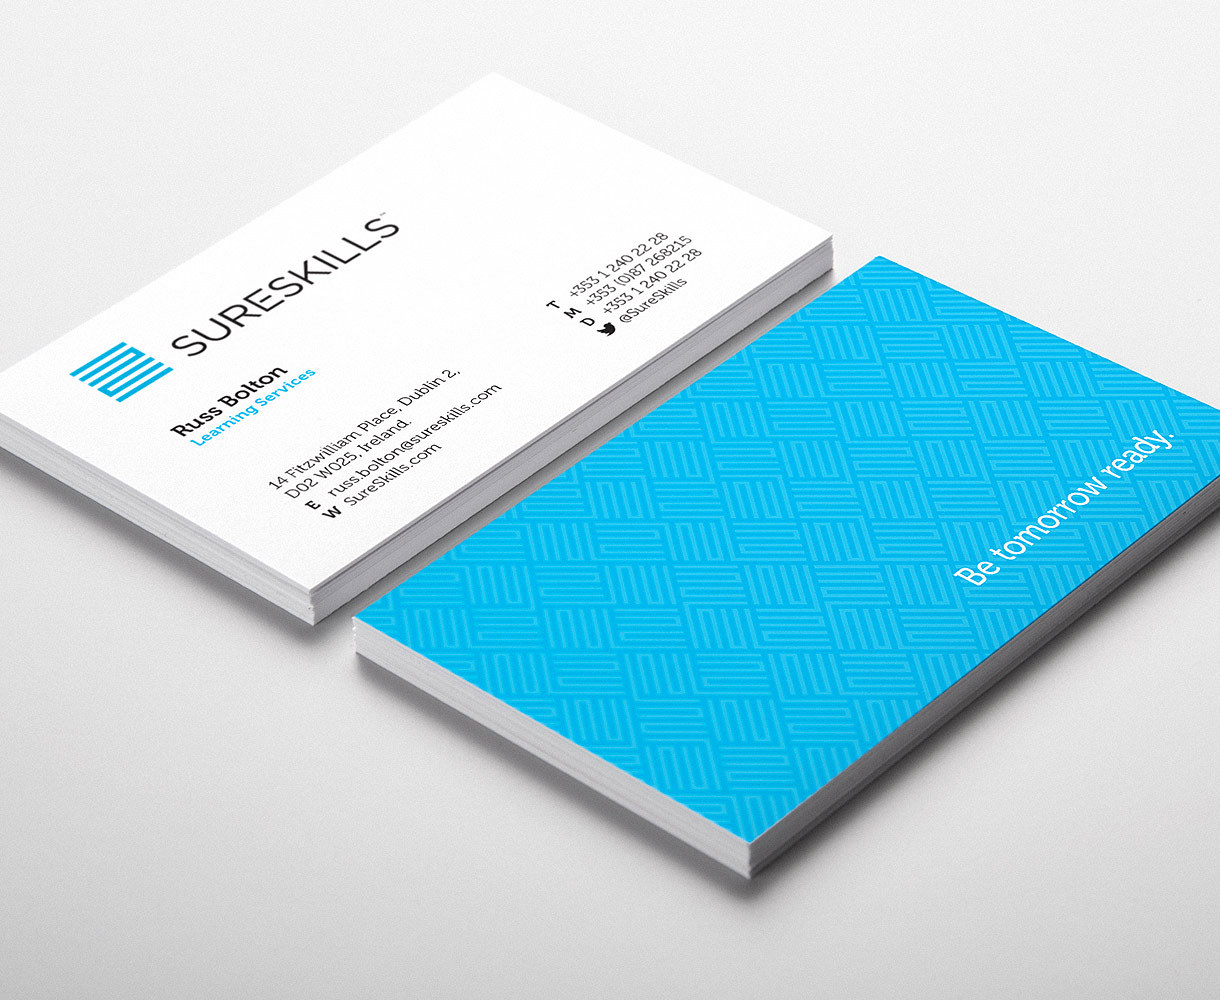 Sureskills Brand Identity Development stationery suite business cards